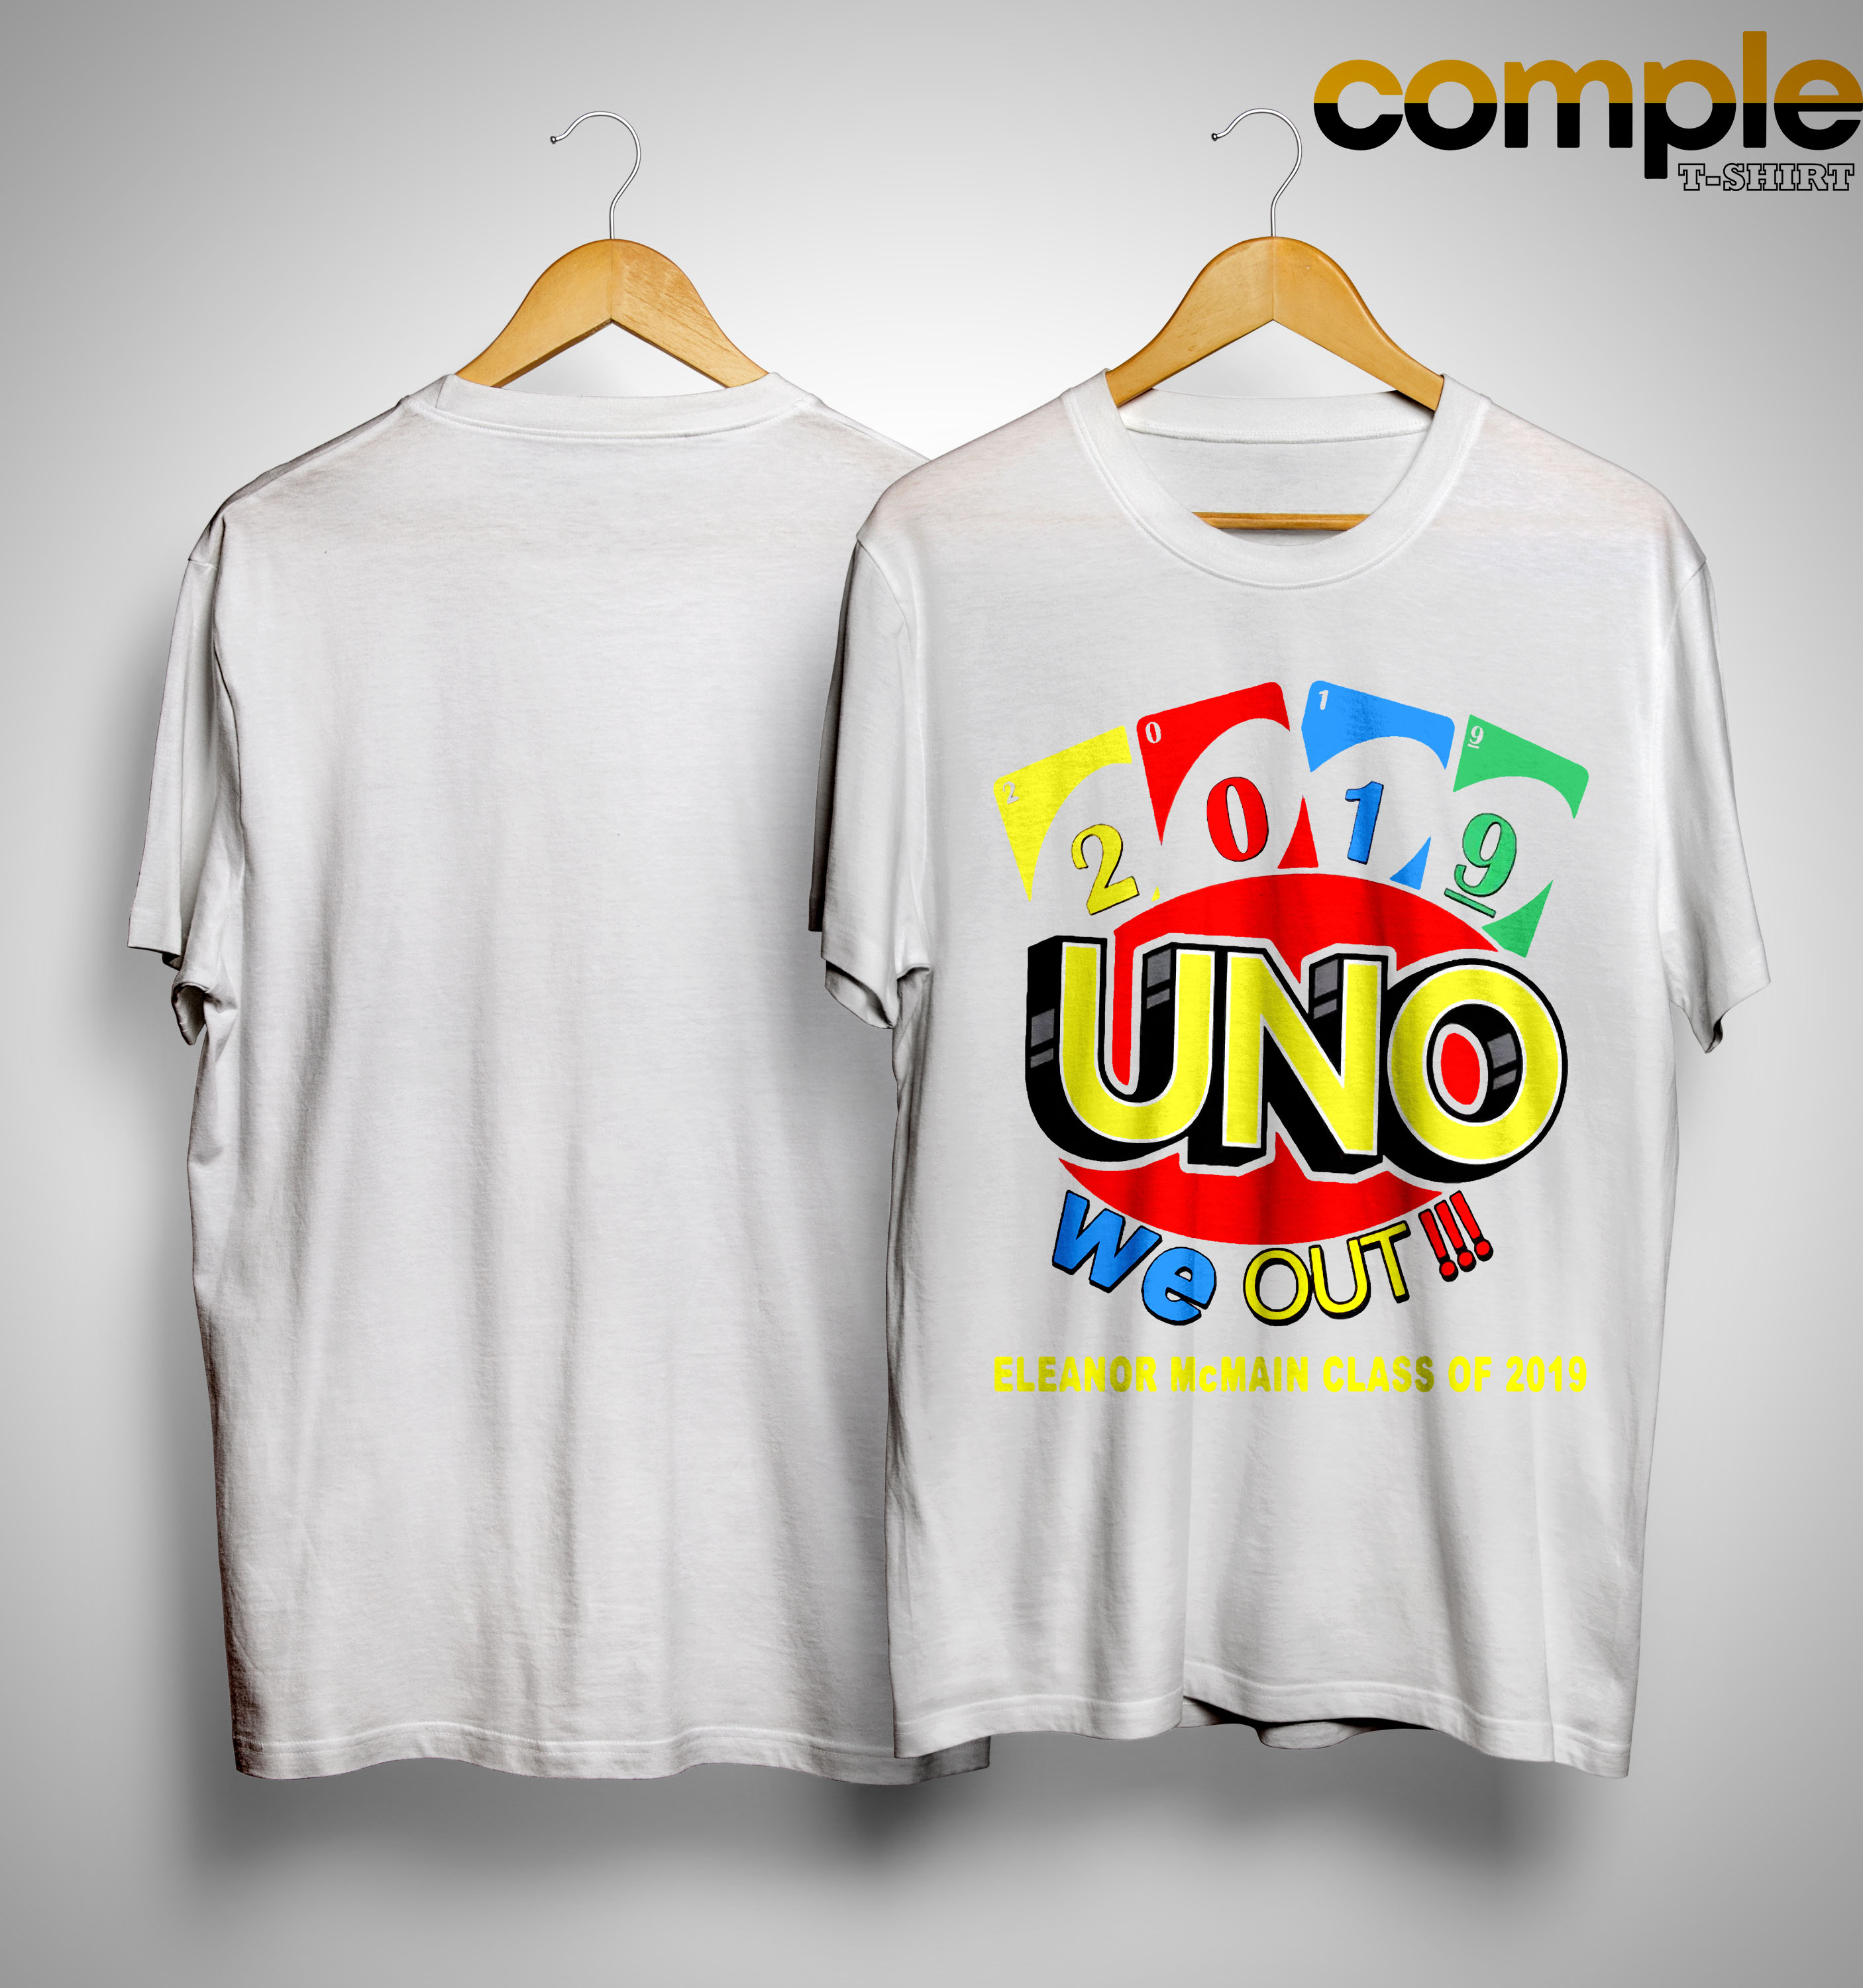 2019 Uno We Out Eleanor Mcmain Class Of 2019 Shirt